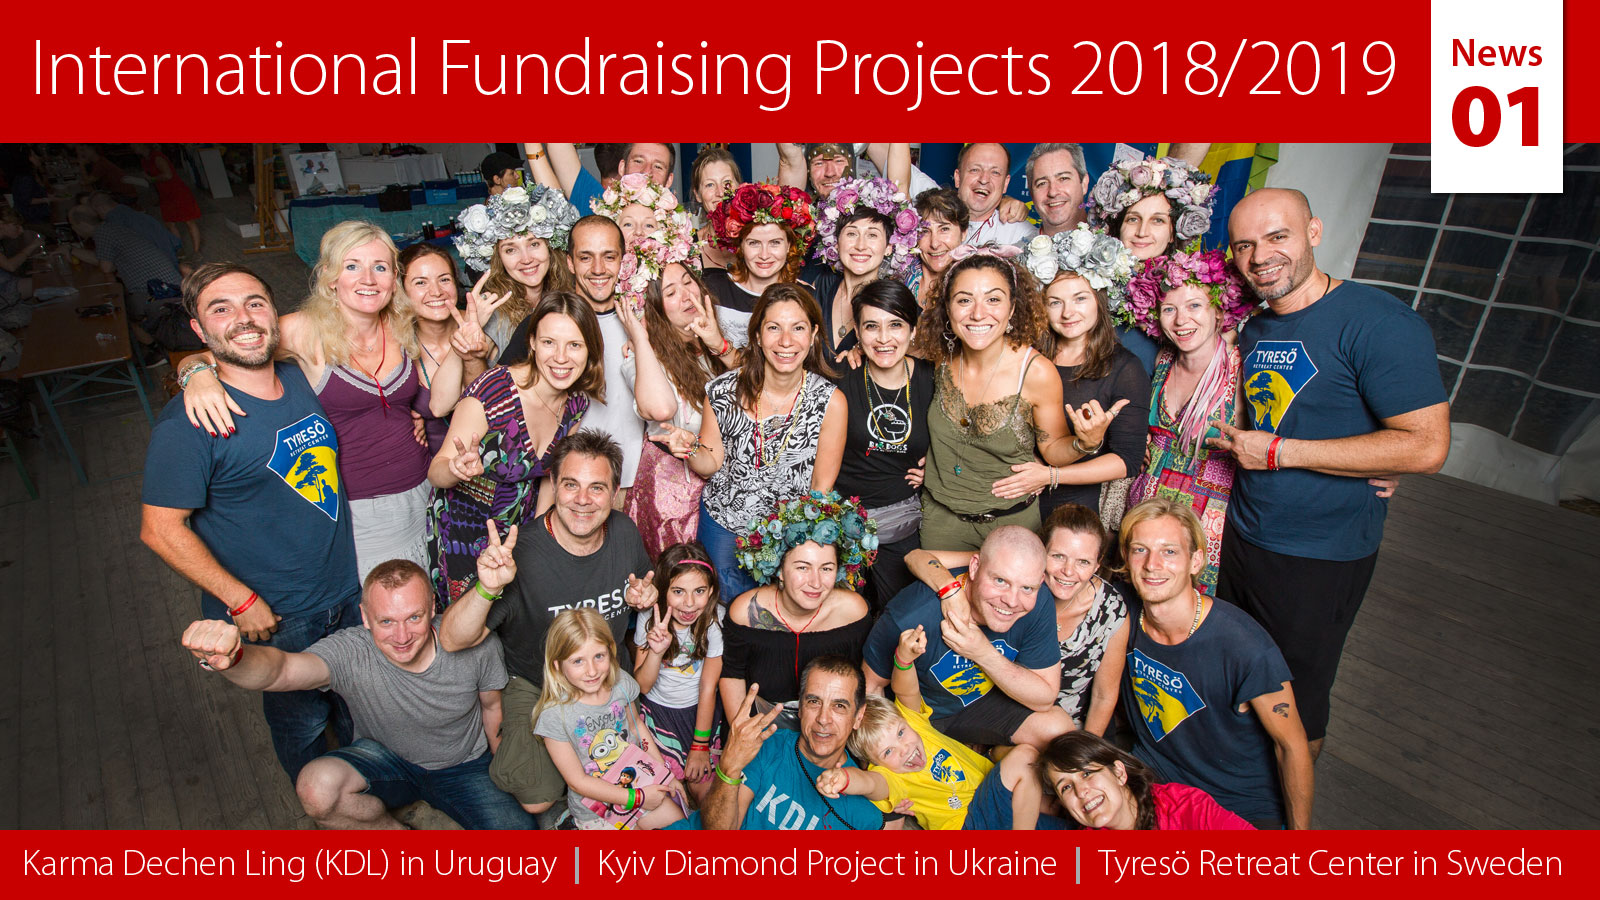 International Fundraising Projects 2018/2019 – News 01